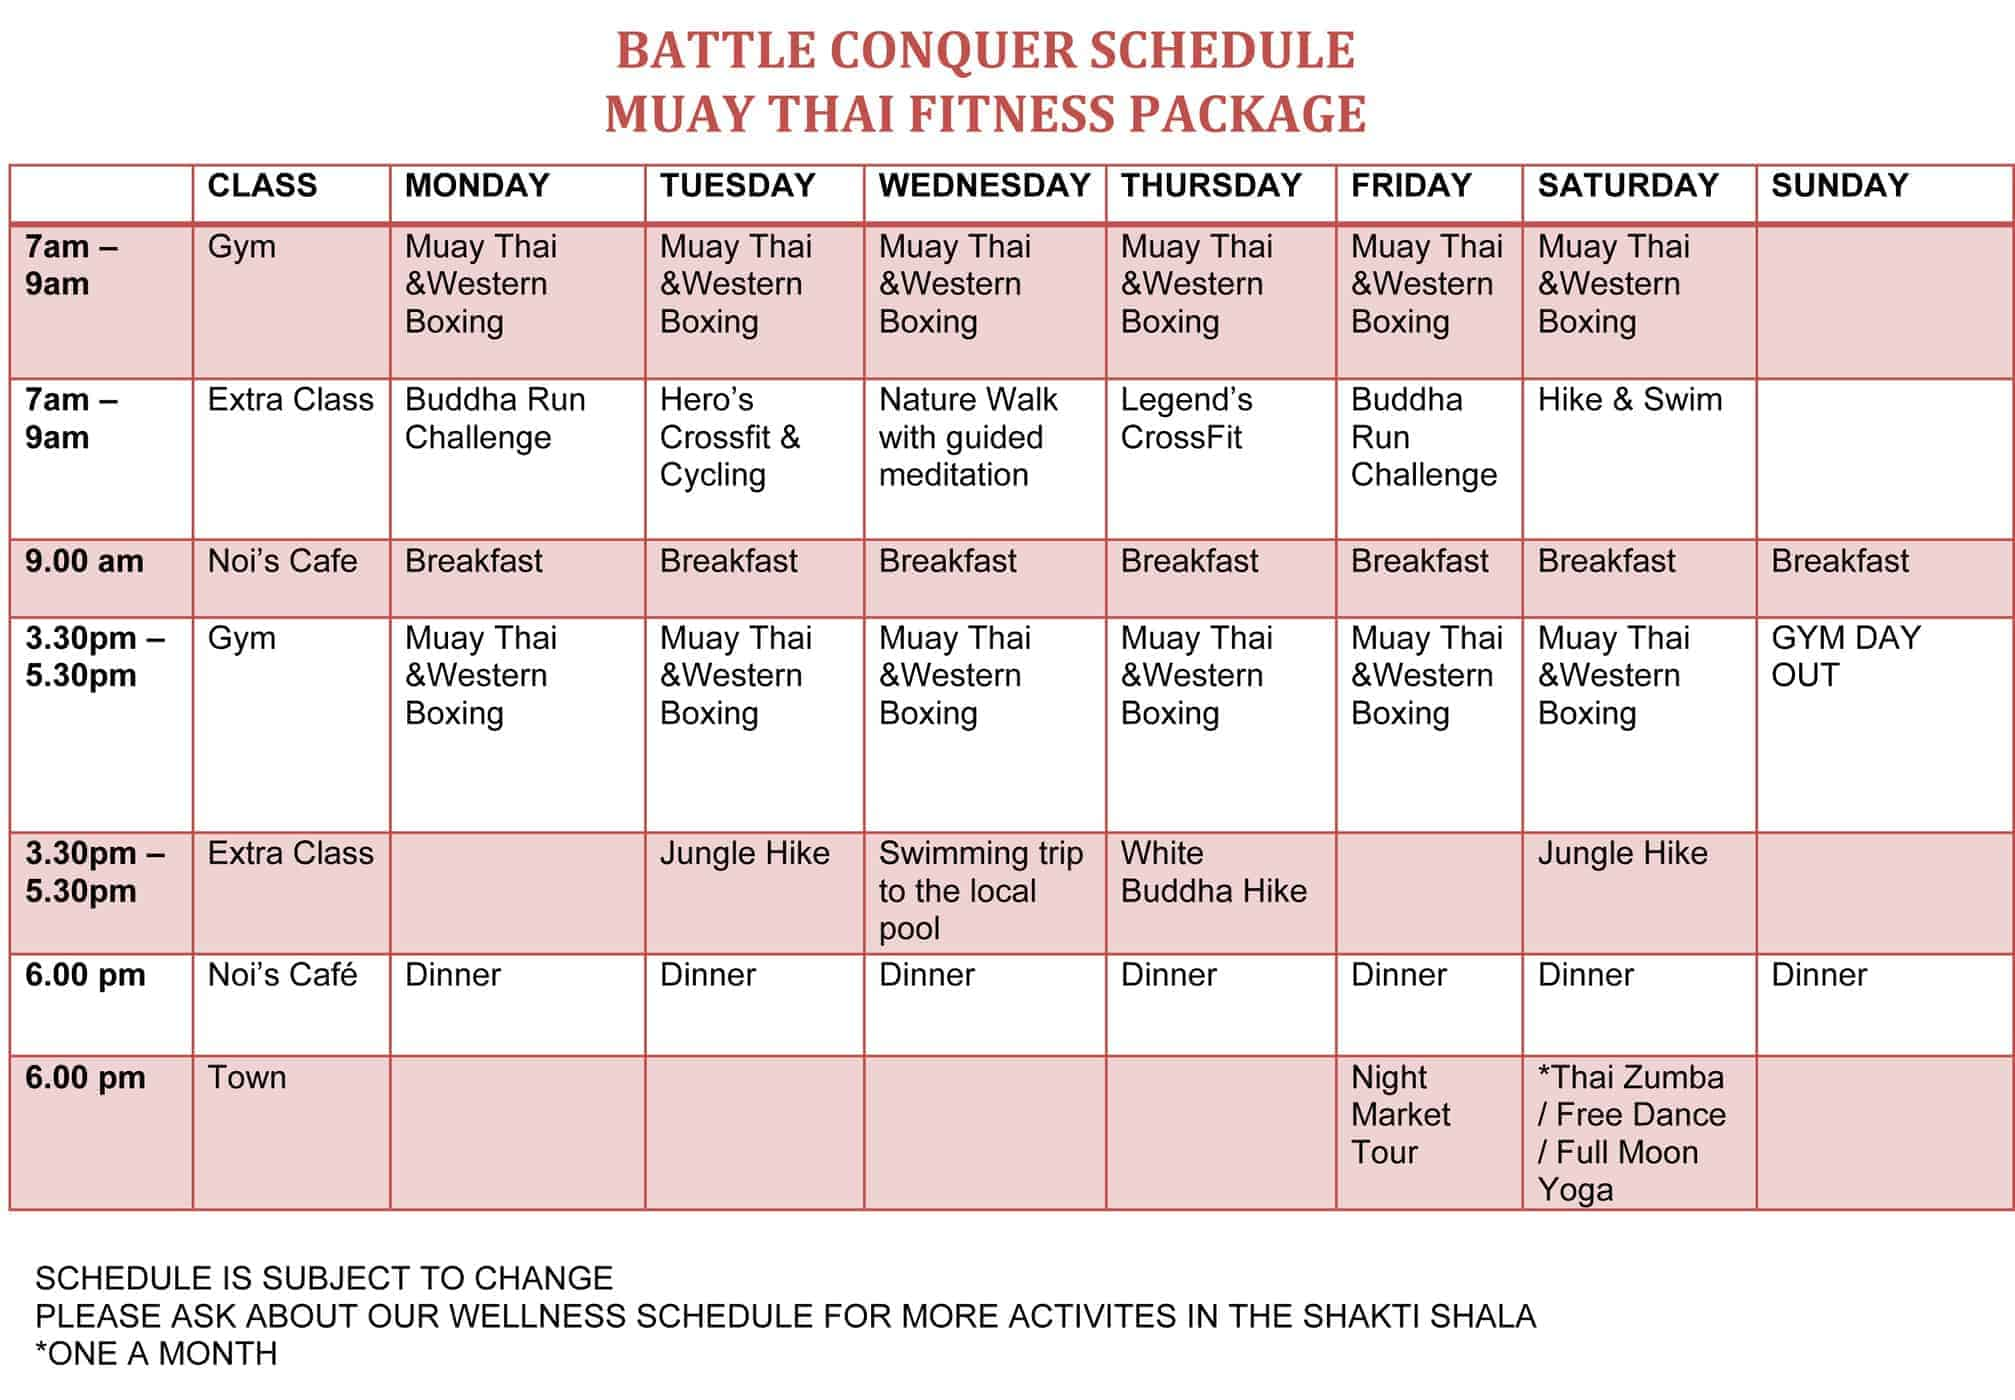 Battle Conquer Muay Thai Schedule